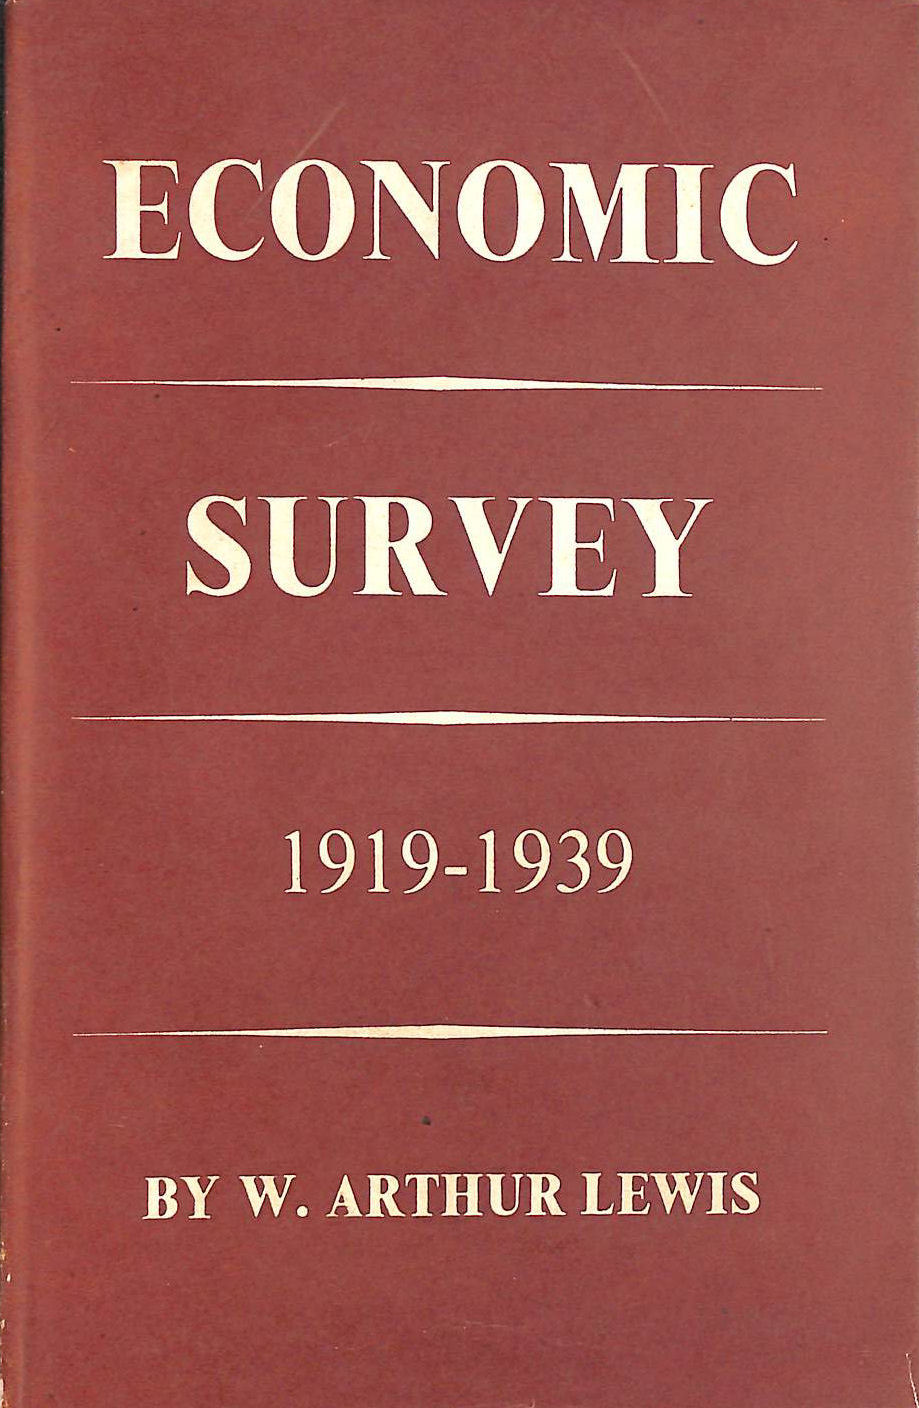 Image for Economic Survey 1919-1939